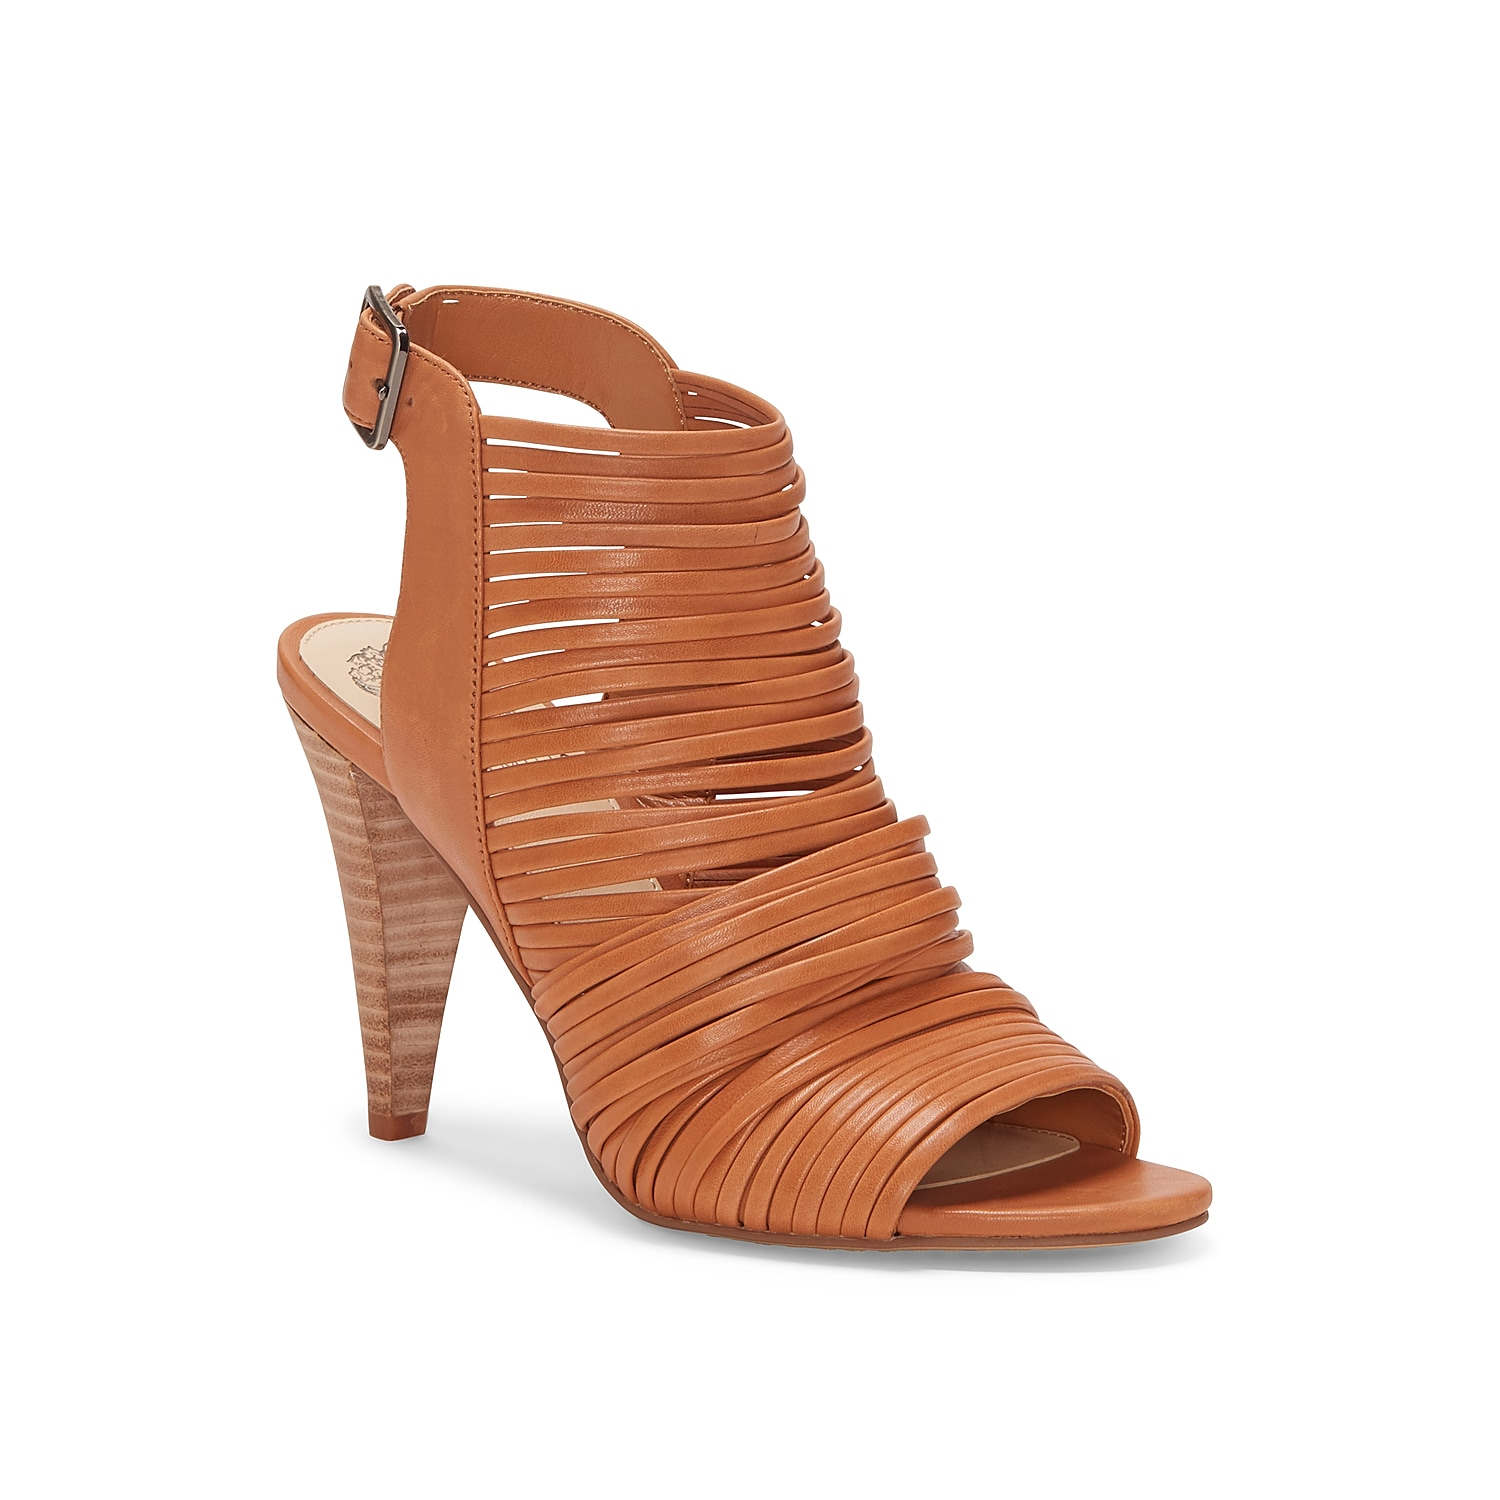 Walk with confidence in the Adeenta sandal from Vince Camuto. Featuring a strappy vamp and a cone-inspired heel, this slingback will complement anything from jeans to dresses.